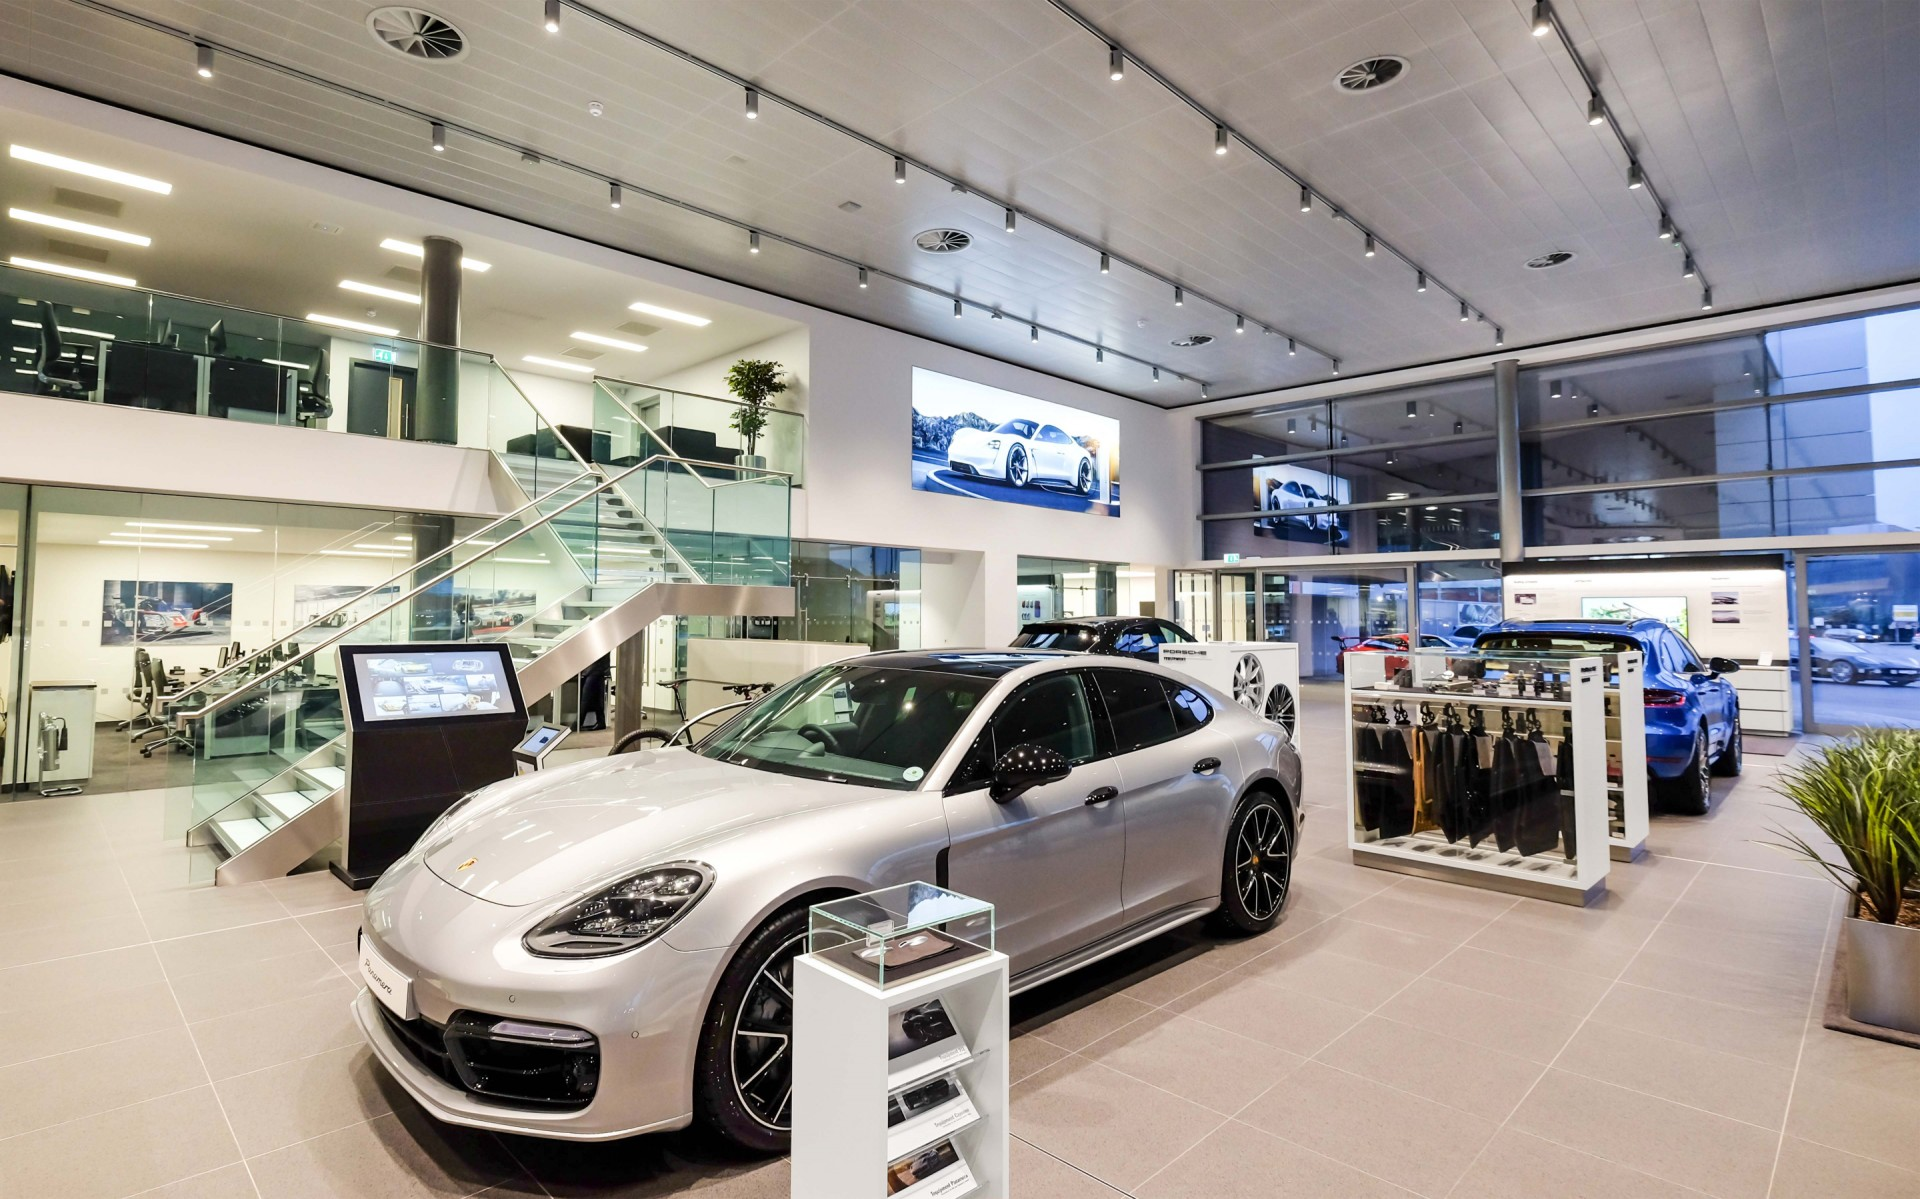 Primarily used on tracks in the Porsche showroom, the M4 spotlights provide the general lighting for the space from the six-meter-high ceiling without creating any pin spotting. – Lloyd Crawford